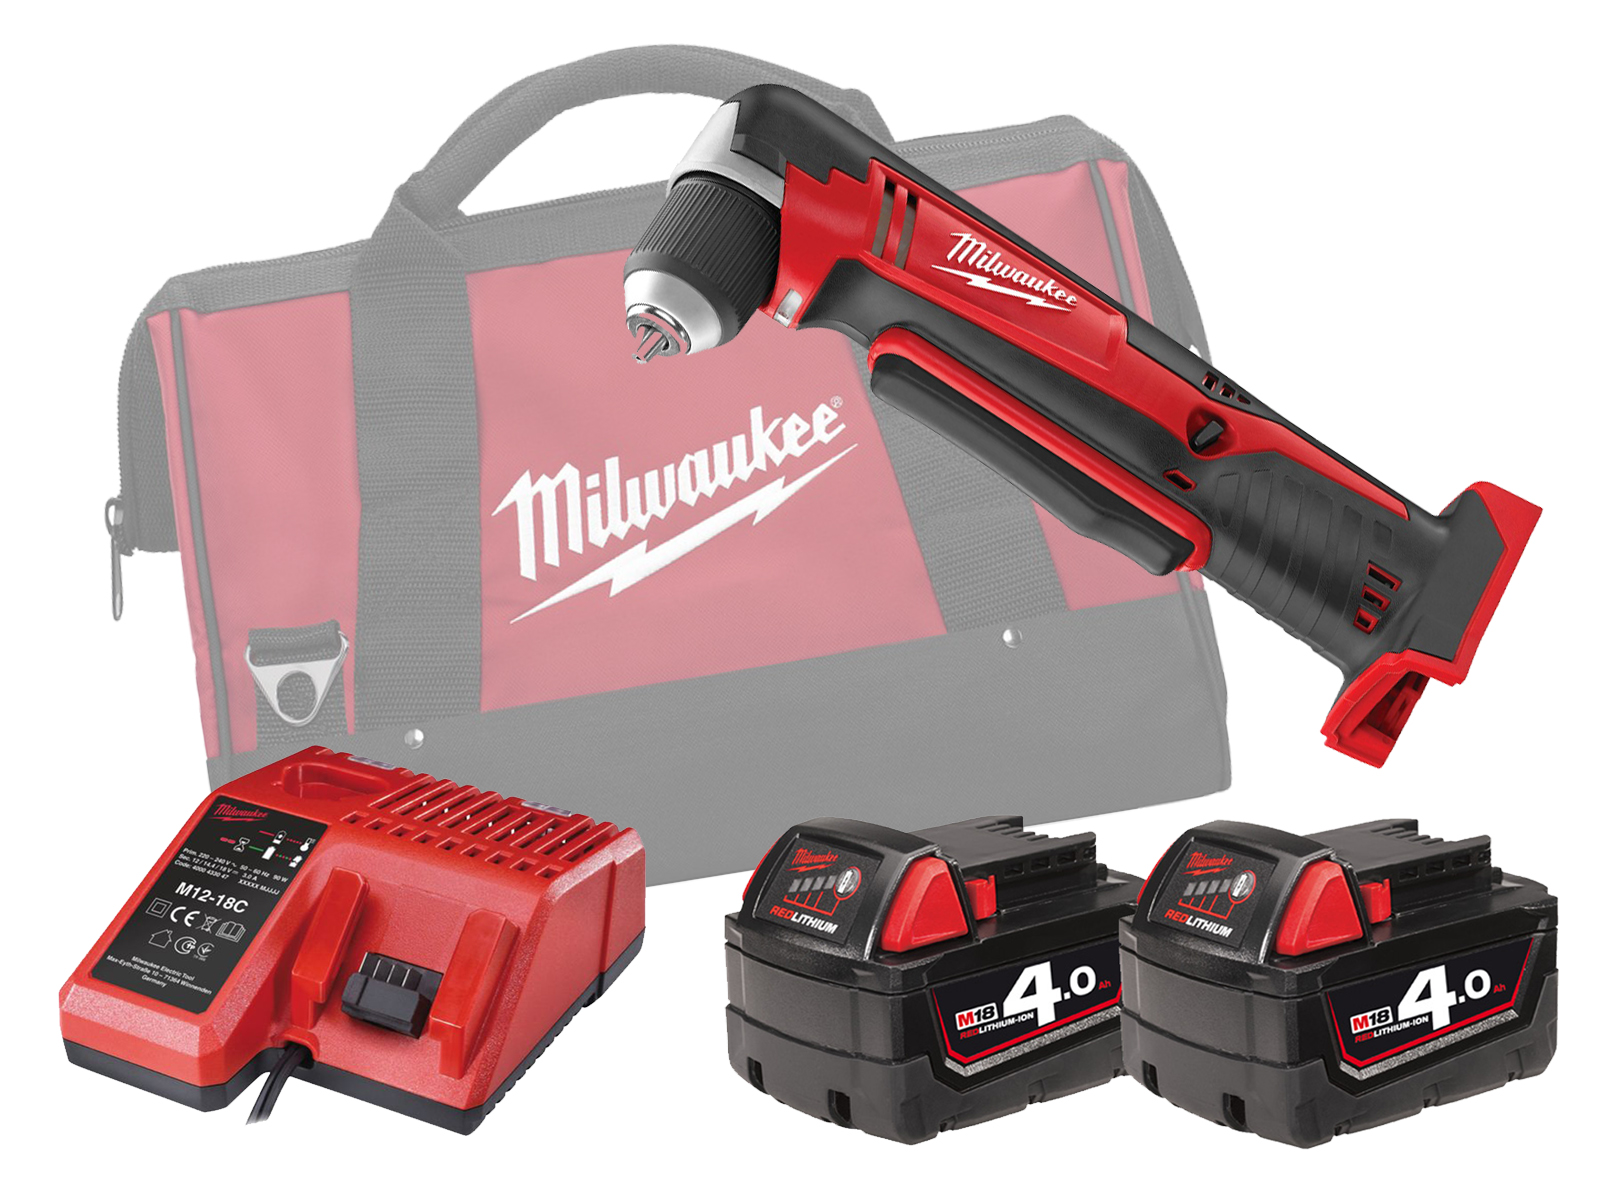 MILWAUKEE 18V COMPACT RIGHT ANGLE DRILL - C18RAD - 4.0AH PACK